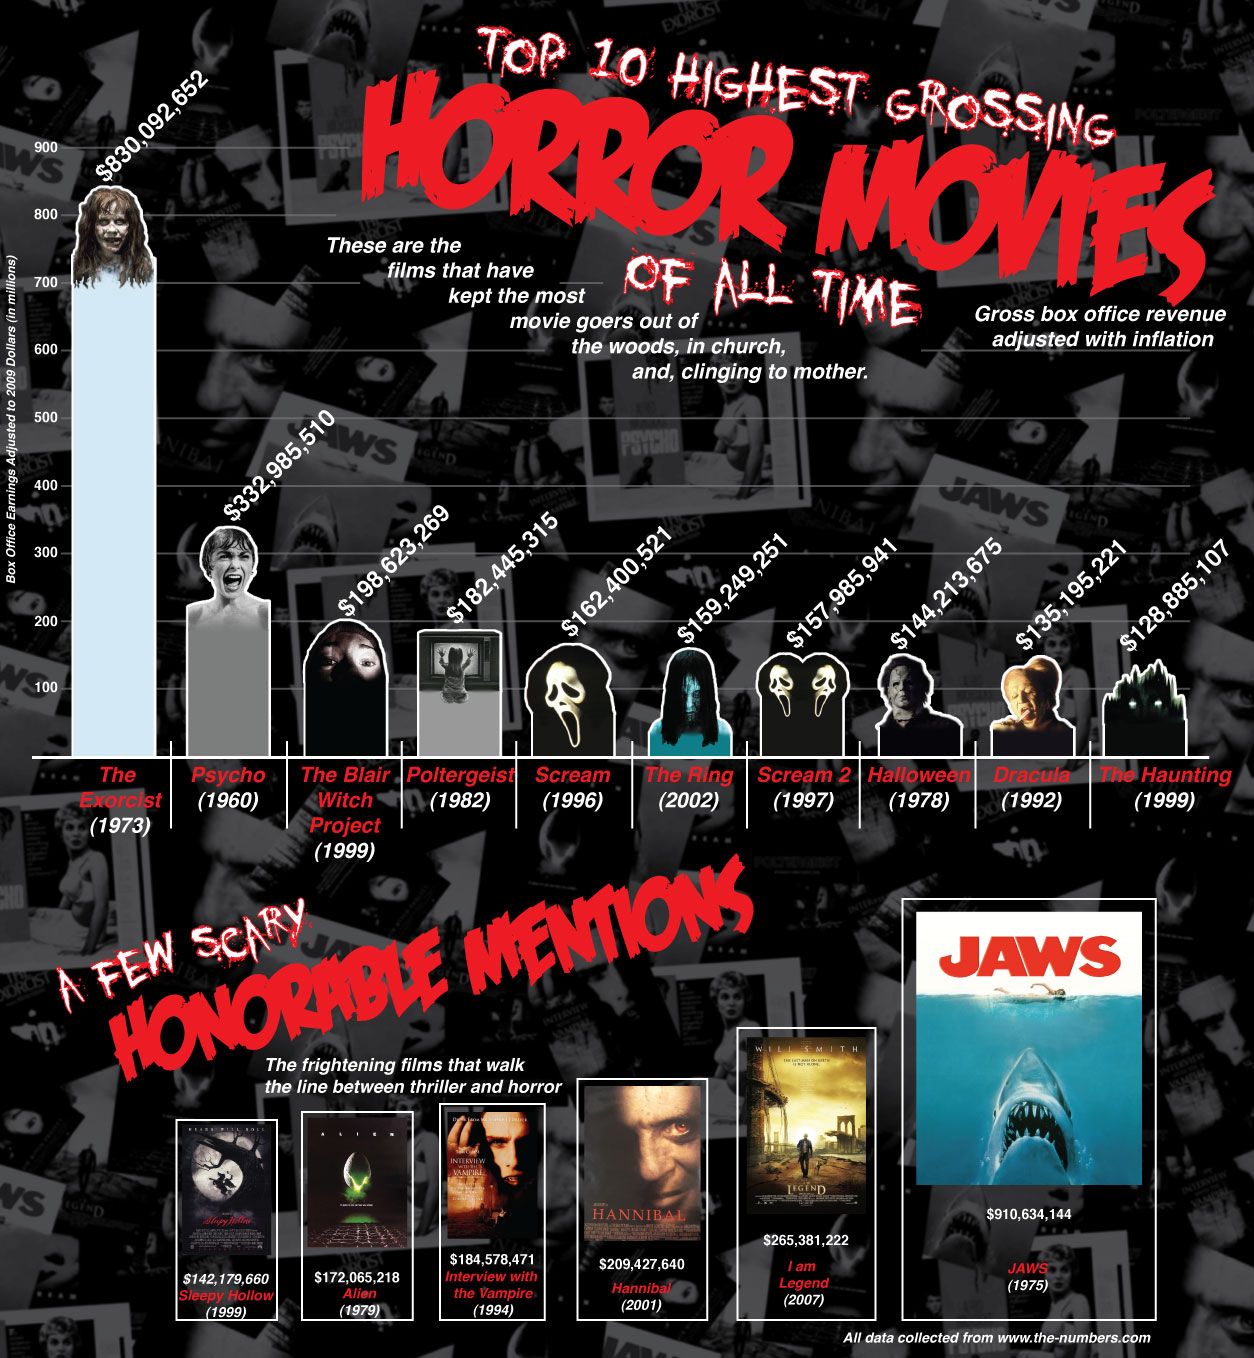 Top 10 highest grossing movies of all time mary mac attack